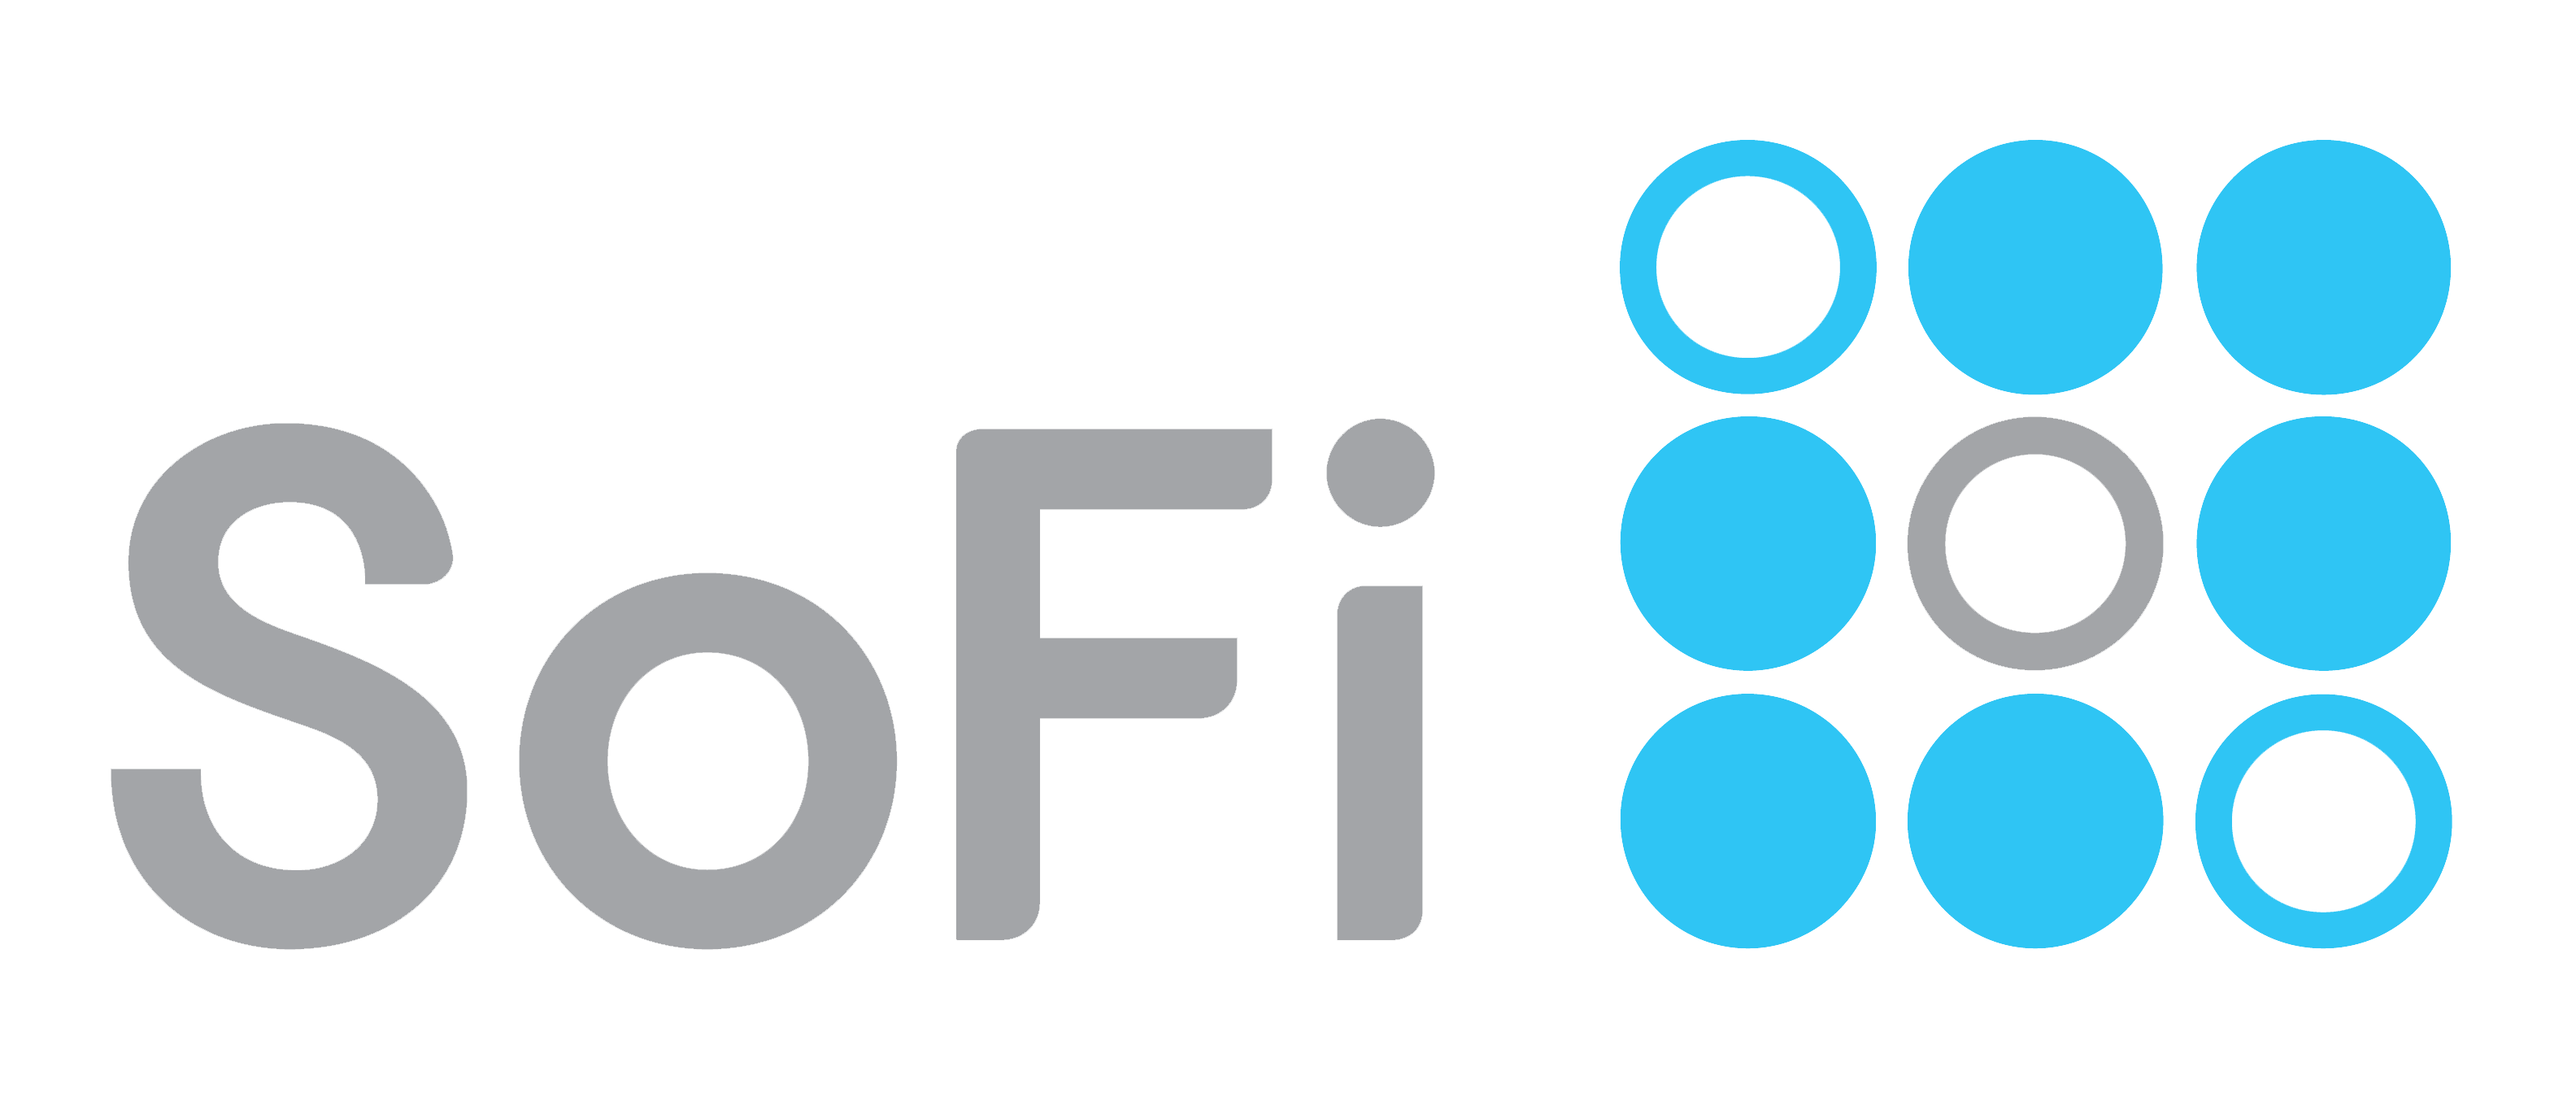 SoFi vs Earnest Comparison LendEDU : sofi logo 2016 from lendedu.com size 3168 x 1344 png 120kB